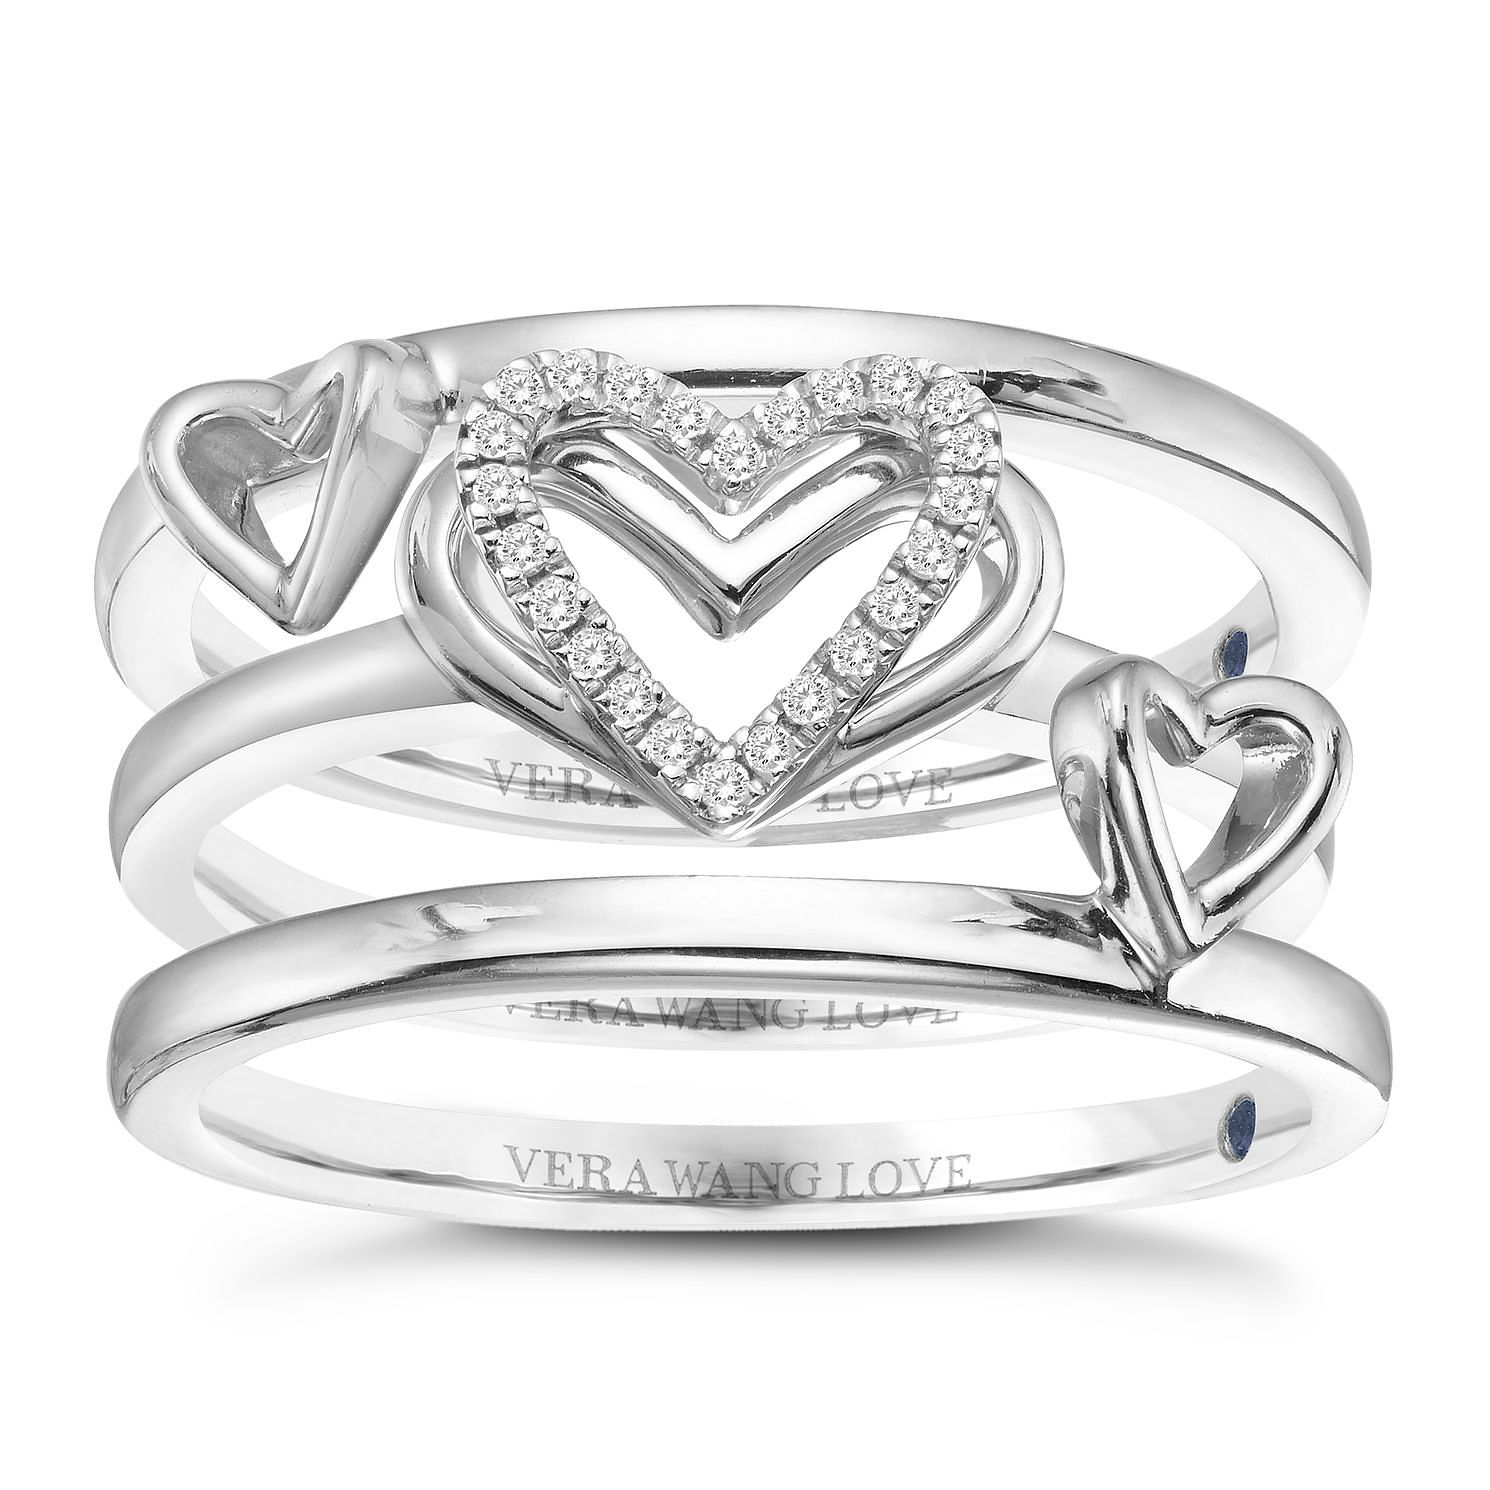 Vera Wang Sterling Silver Diamond Stacking Rings Set - Product number 3332403